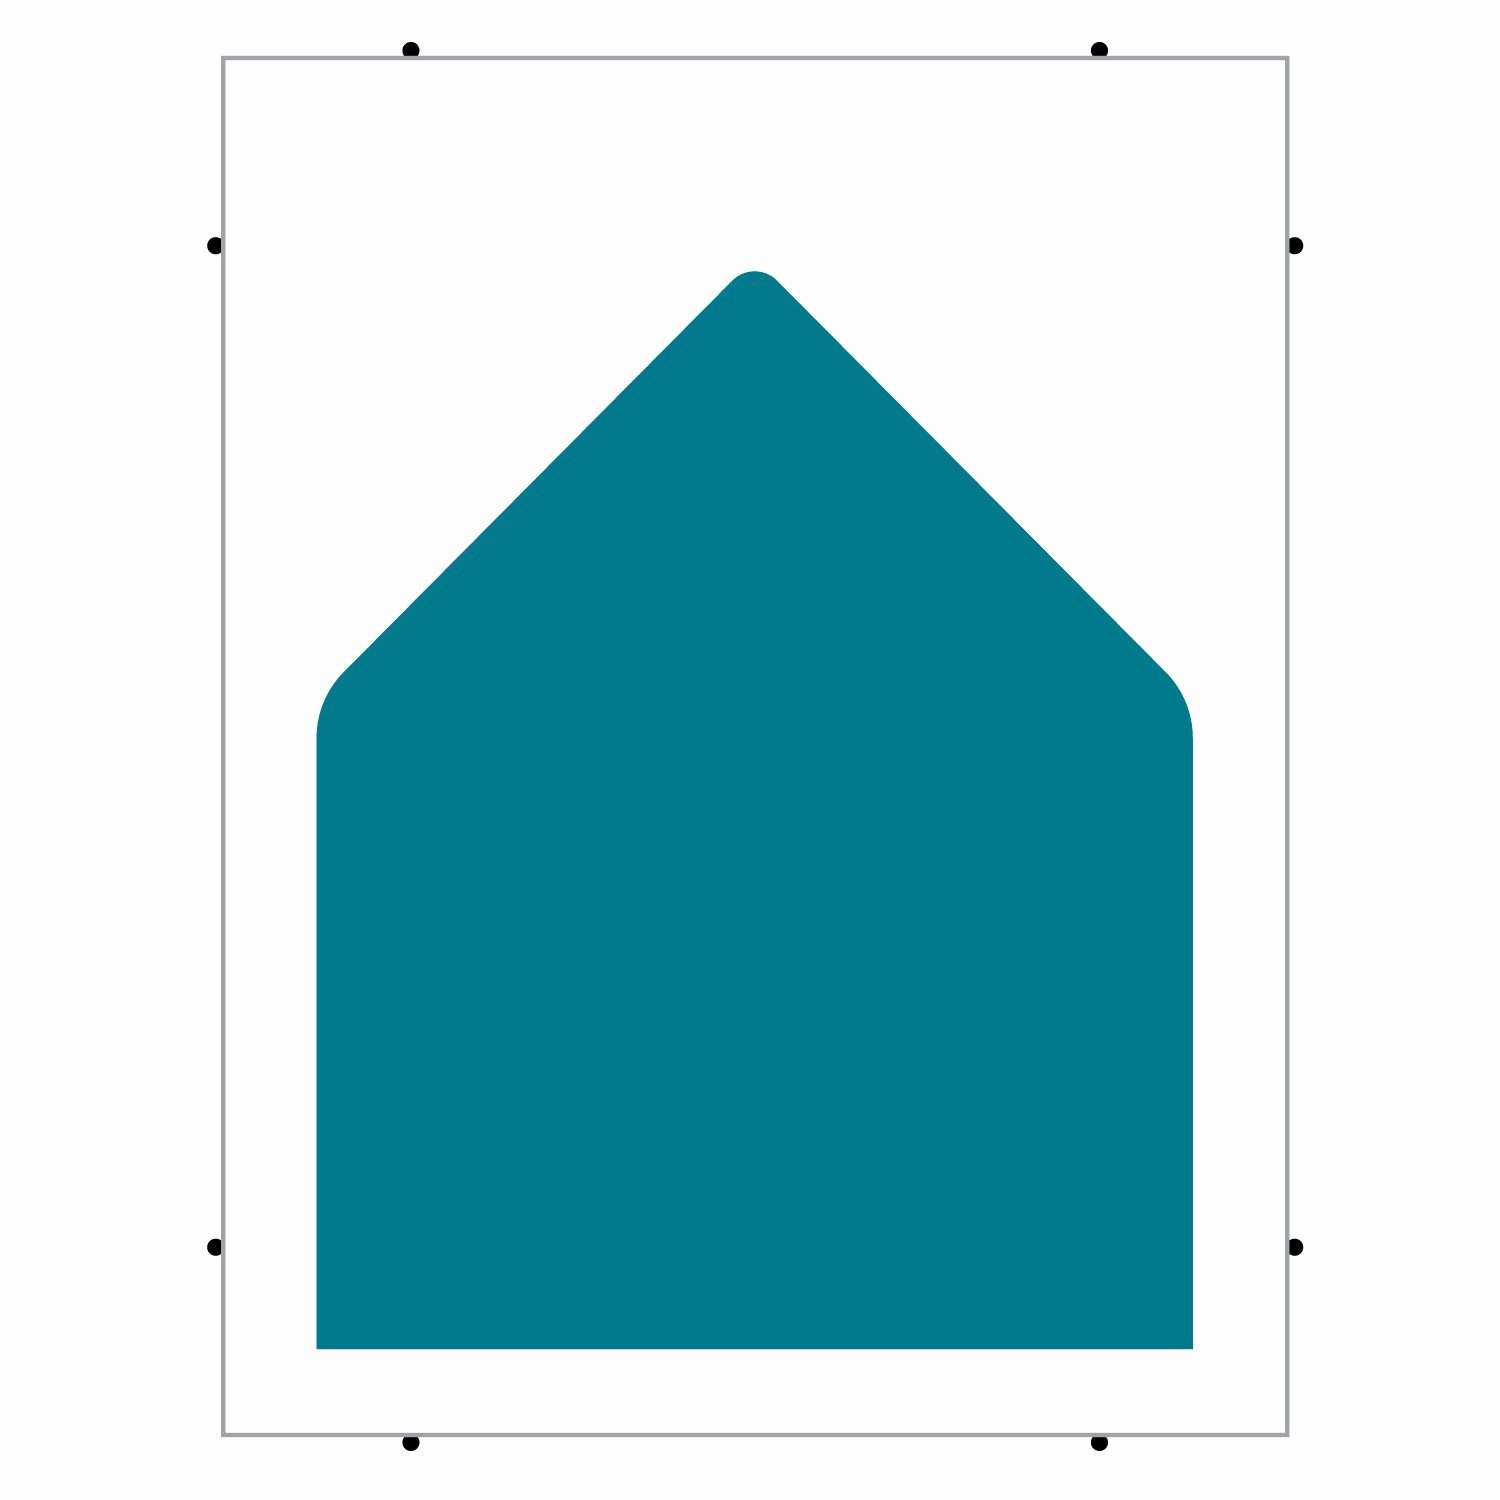 A7 Envelope Template Word Lovely A7 Envelope Template A 7 Envelope Template Word 3 Blank 5